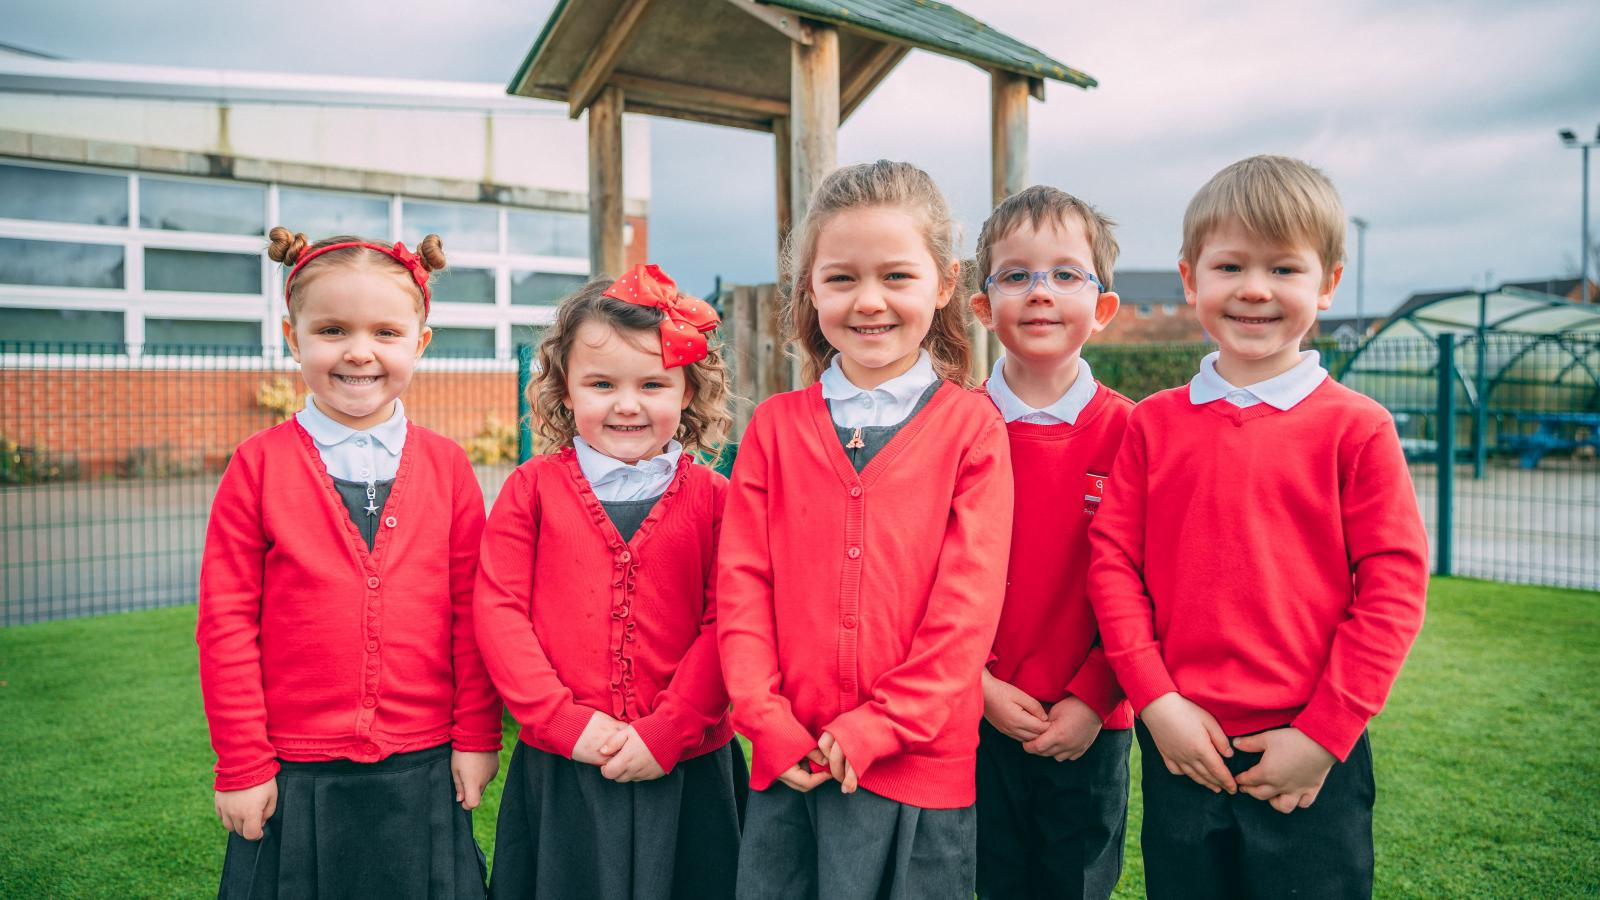 EYFS Vision  featured image